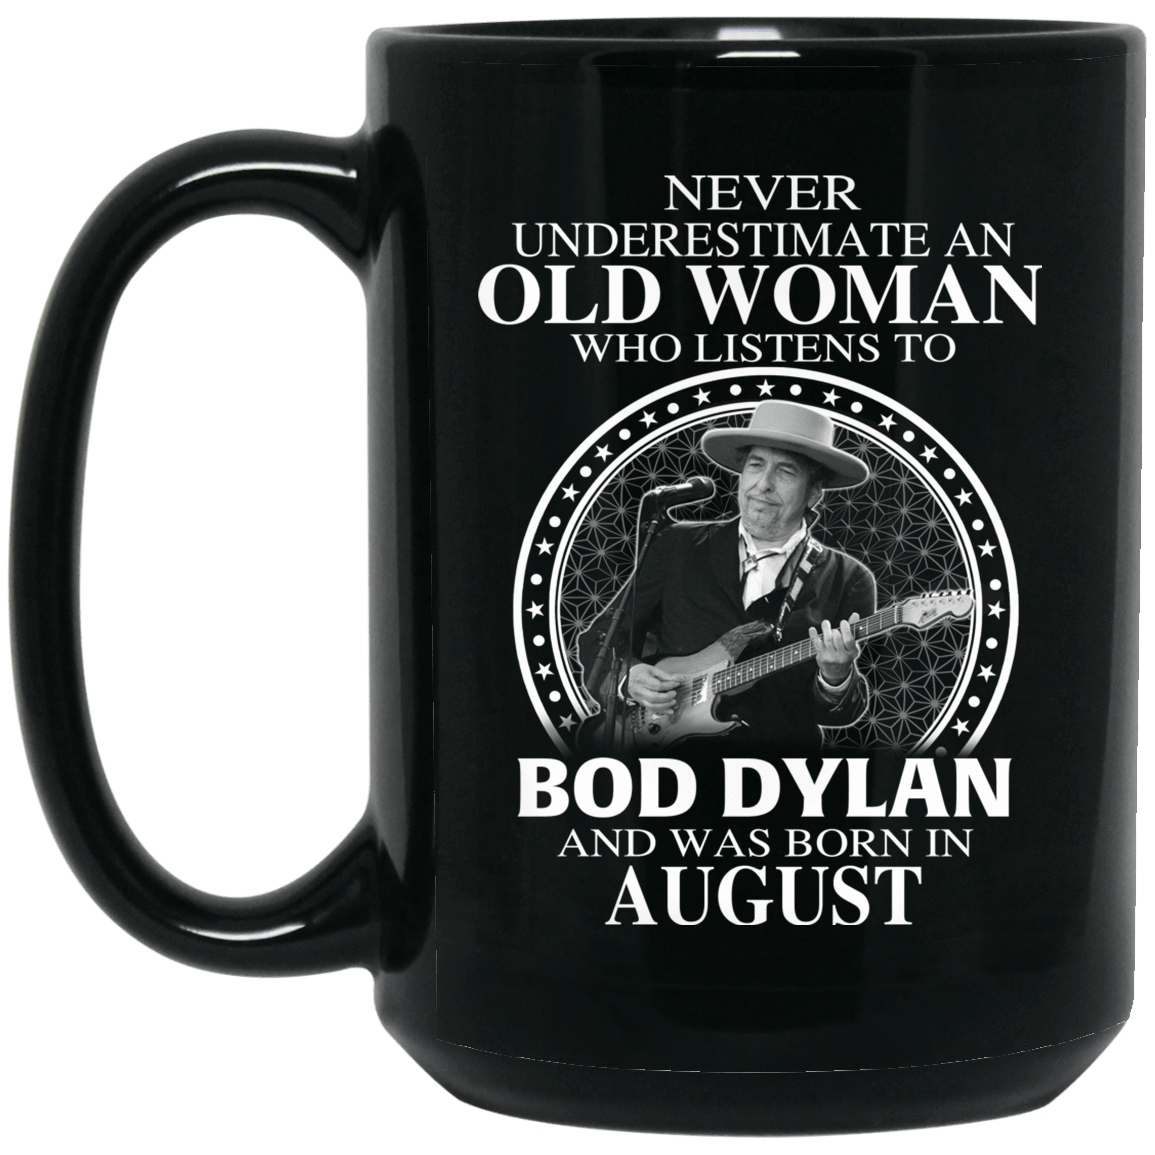 An Old Woman Who Listens To Bob Dylan And Was Born In August Mug 1066-10182-76154149-49311 - Tee Ript